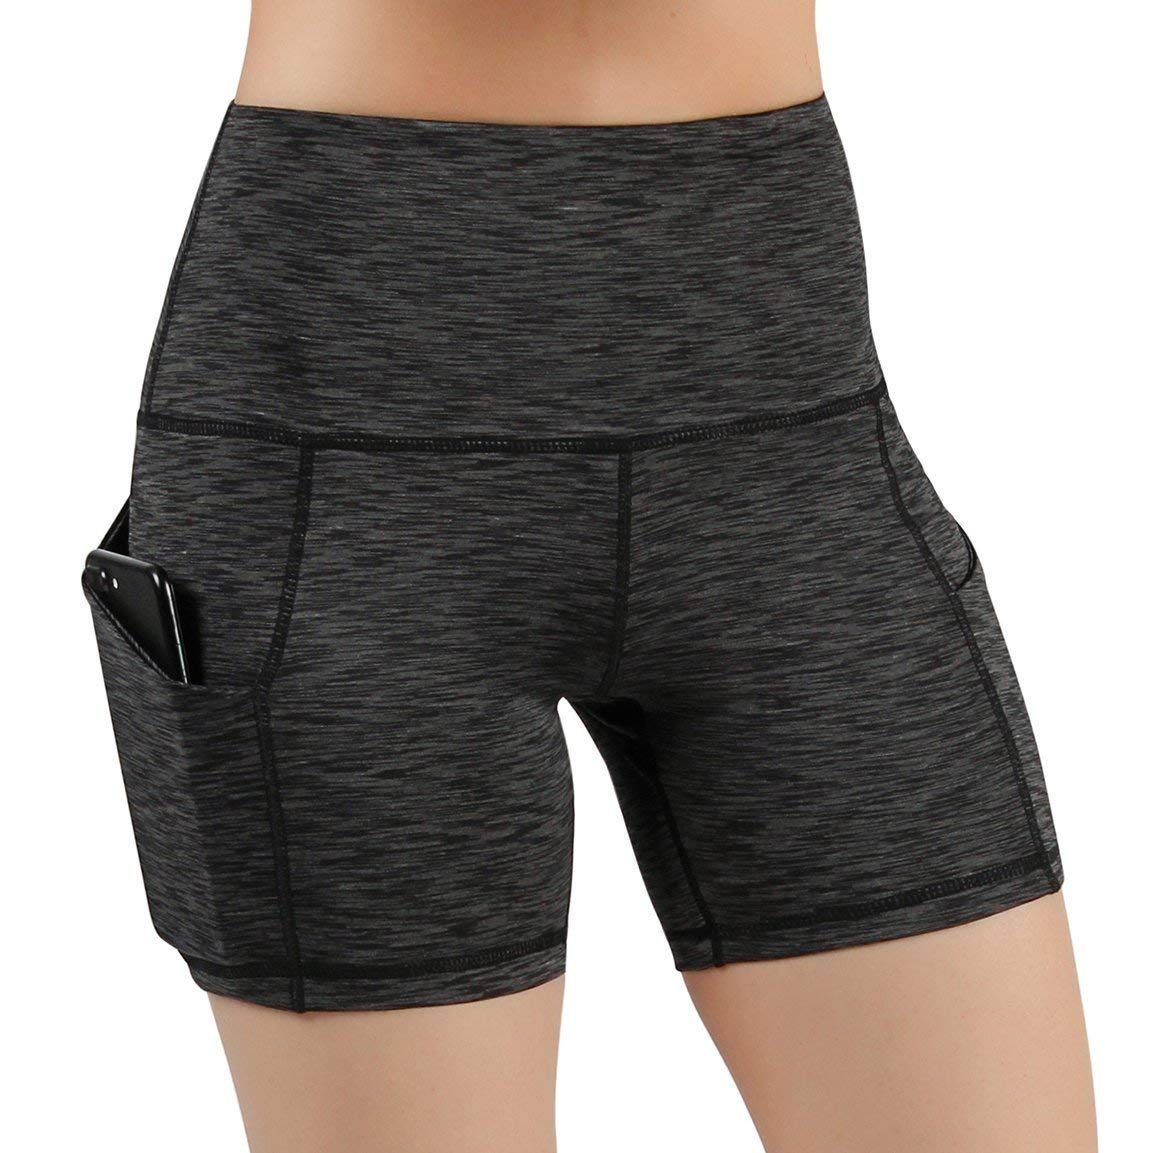 2292b52923 Get Quotations · High Waist Out Pocket Yoga Shorts Tummy Control Workout  Running Stretch Yoga Gym Pants Spandex Athletic